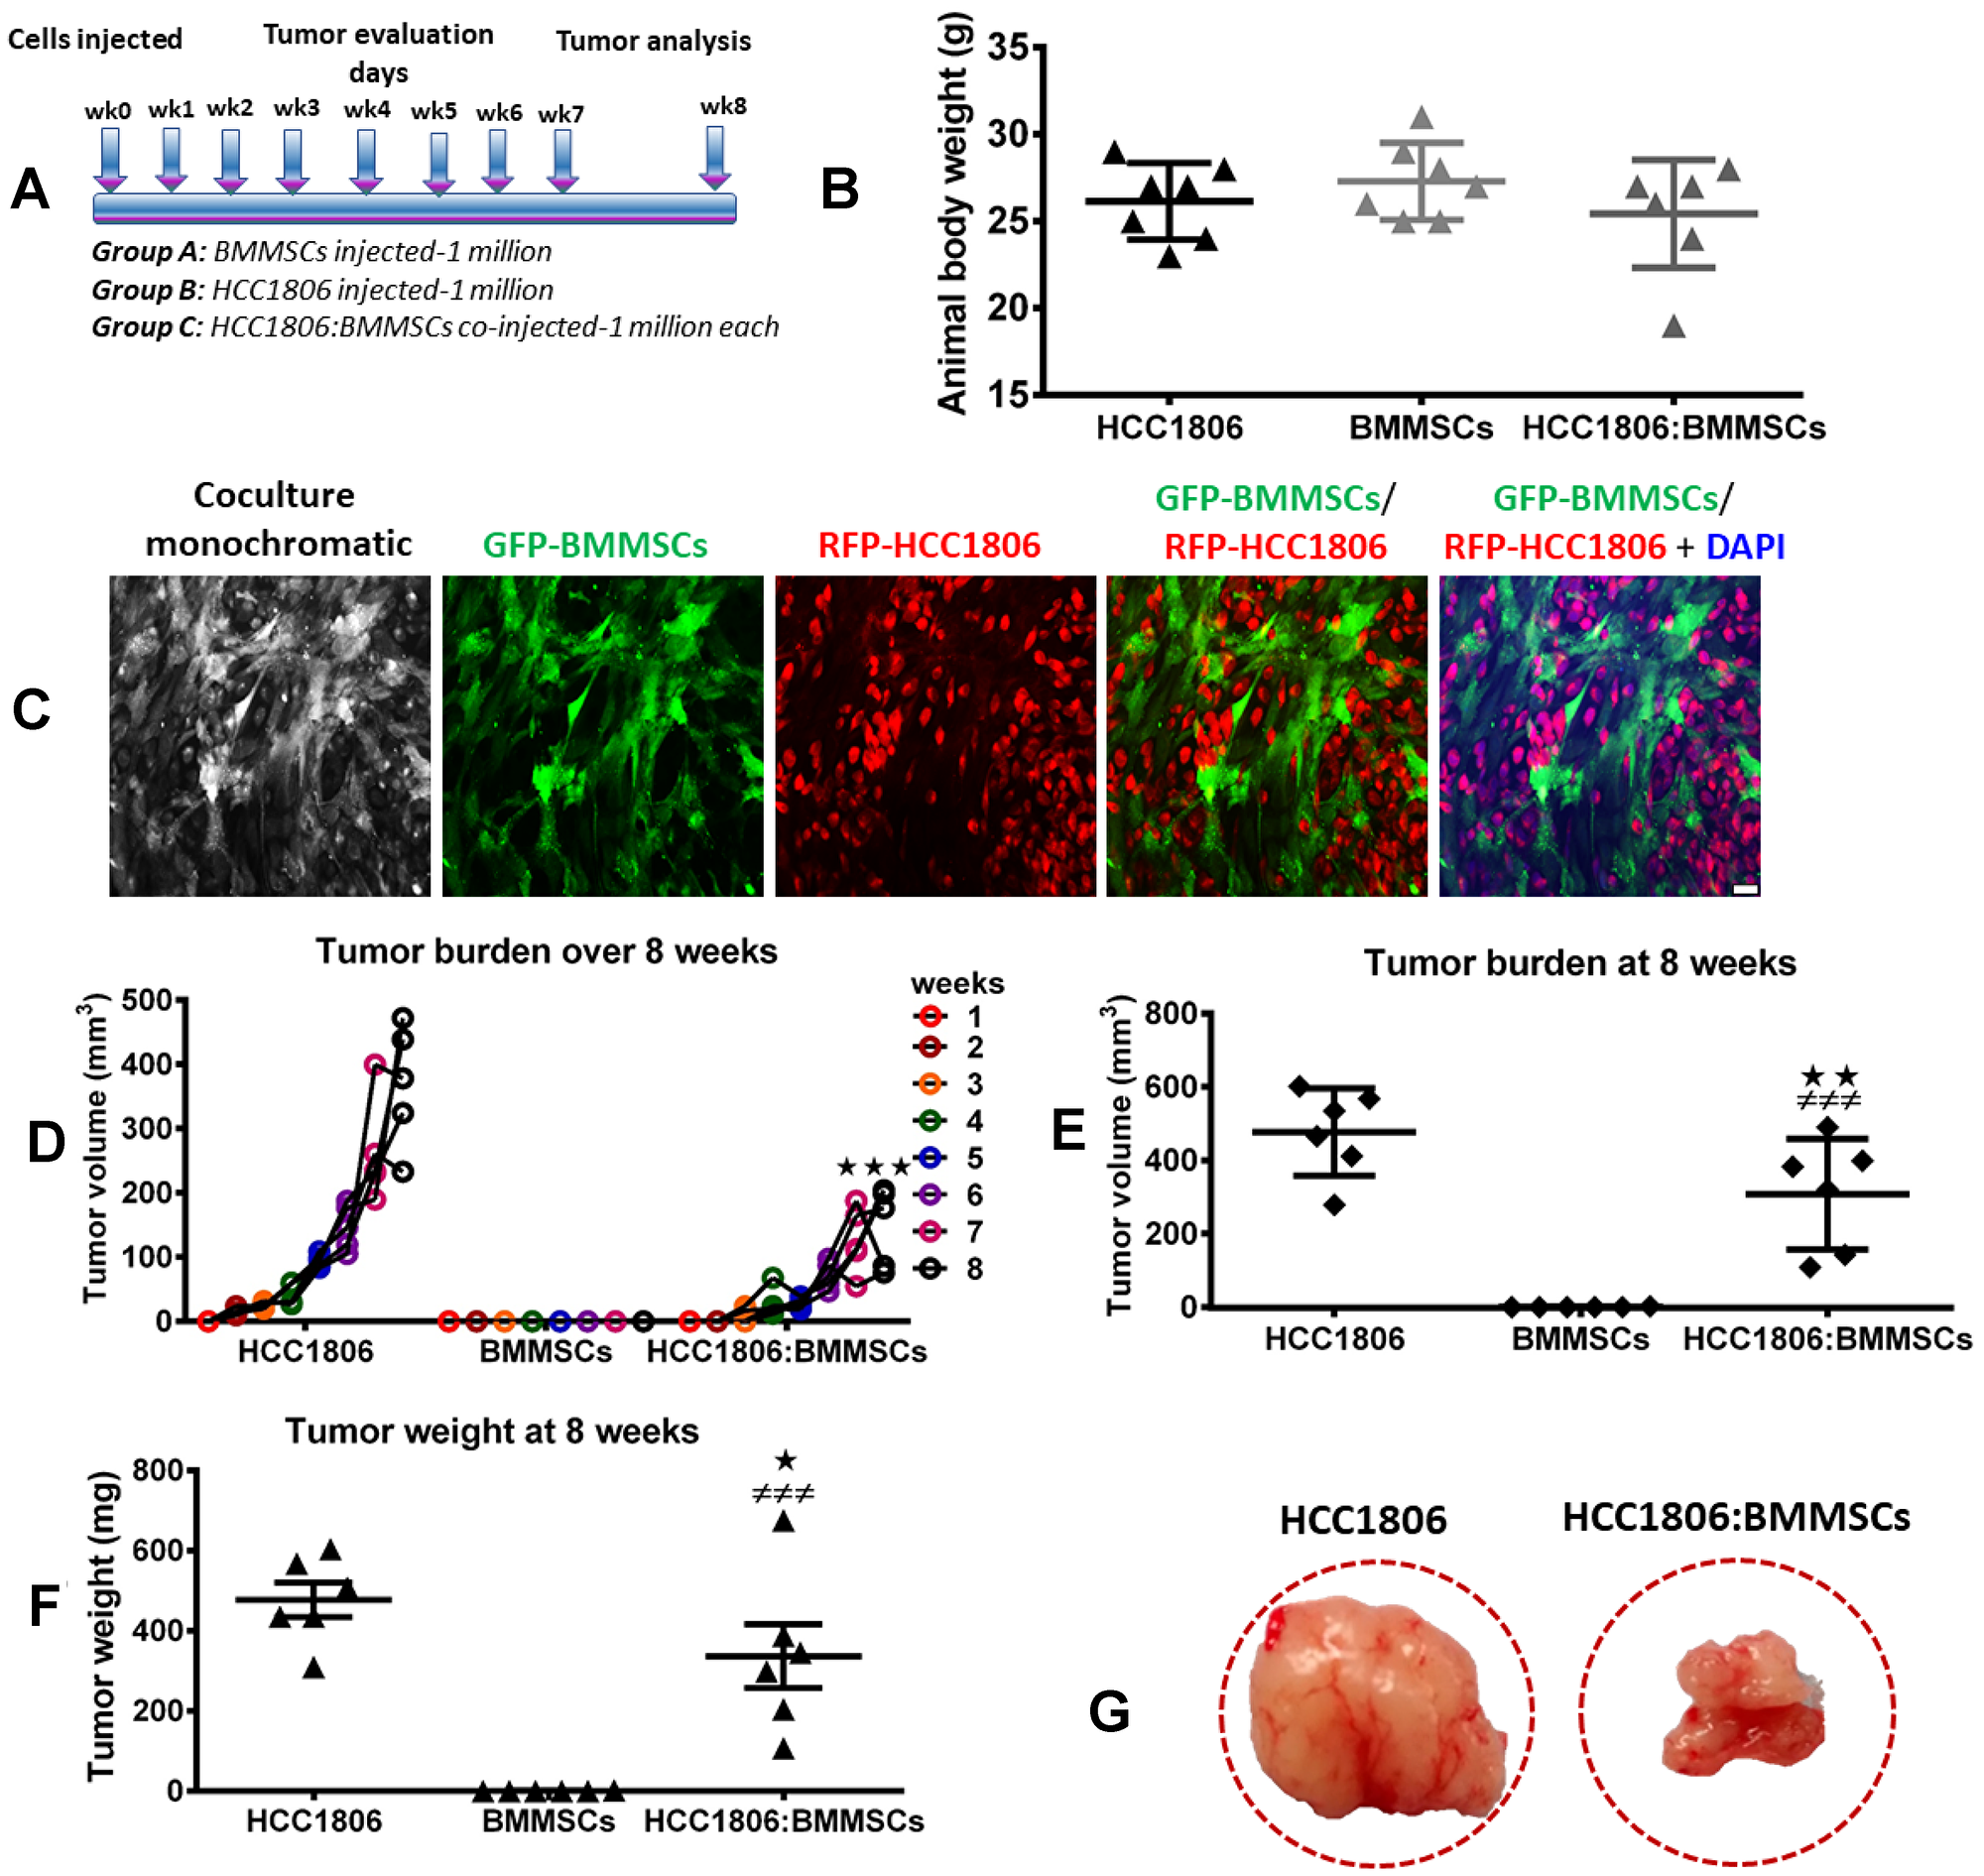 BMMSCs reduce tumor burden of HCC1806 xenografts in vivo.